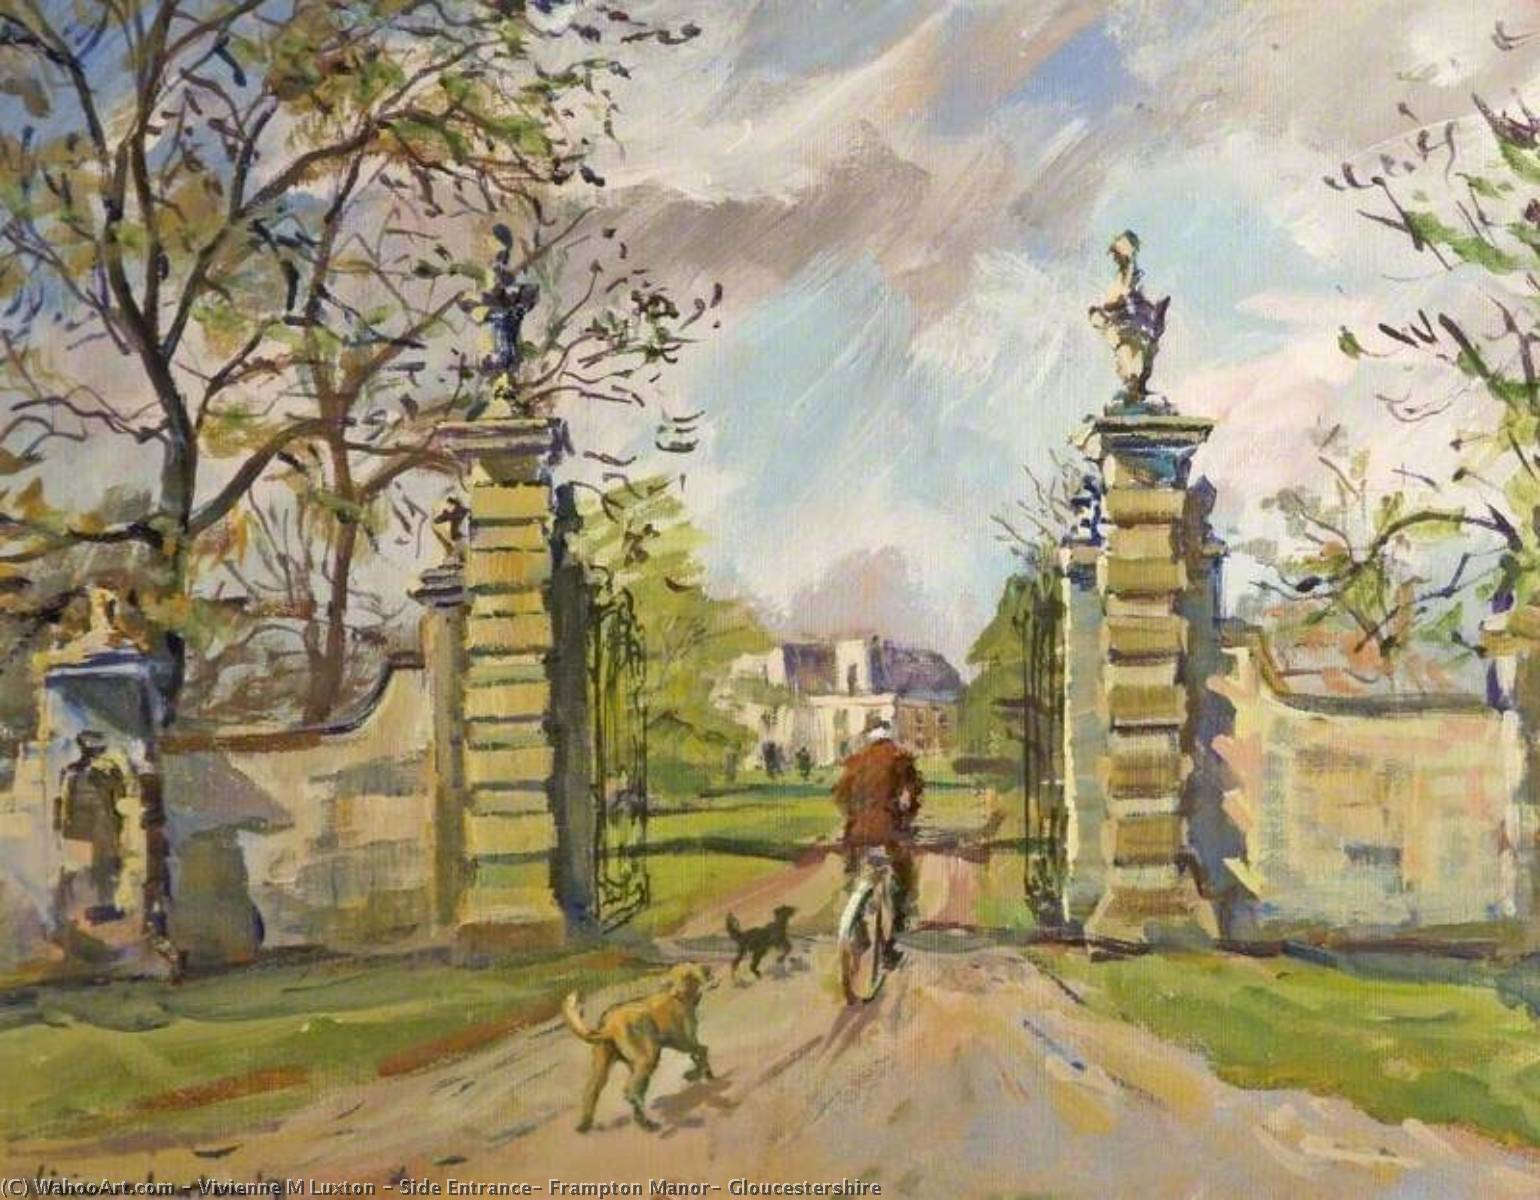 Side Entrance, Frampton Manor, Gloucestershire, Paper by Vivienne M Luxton